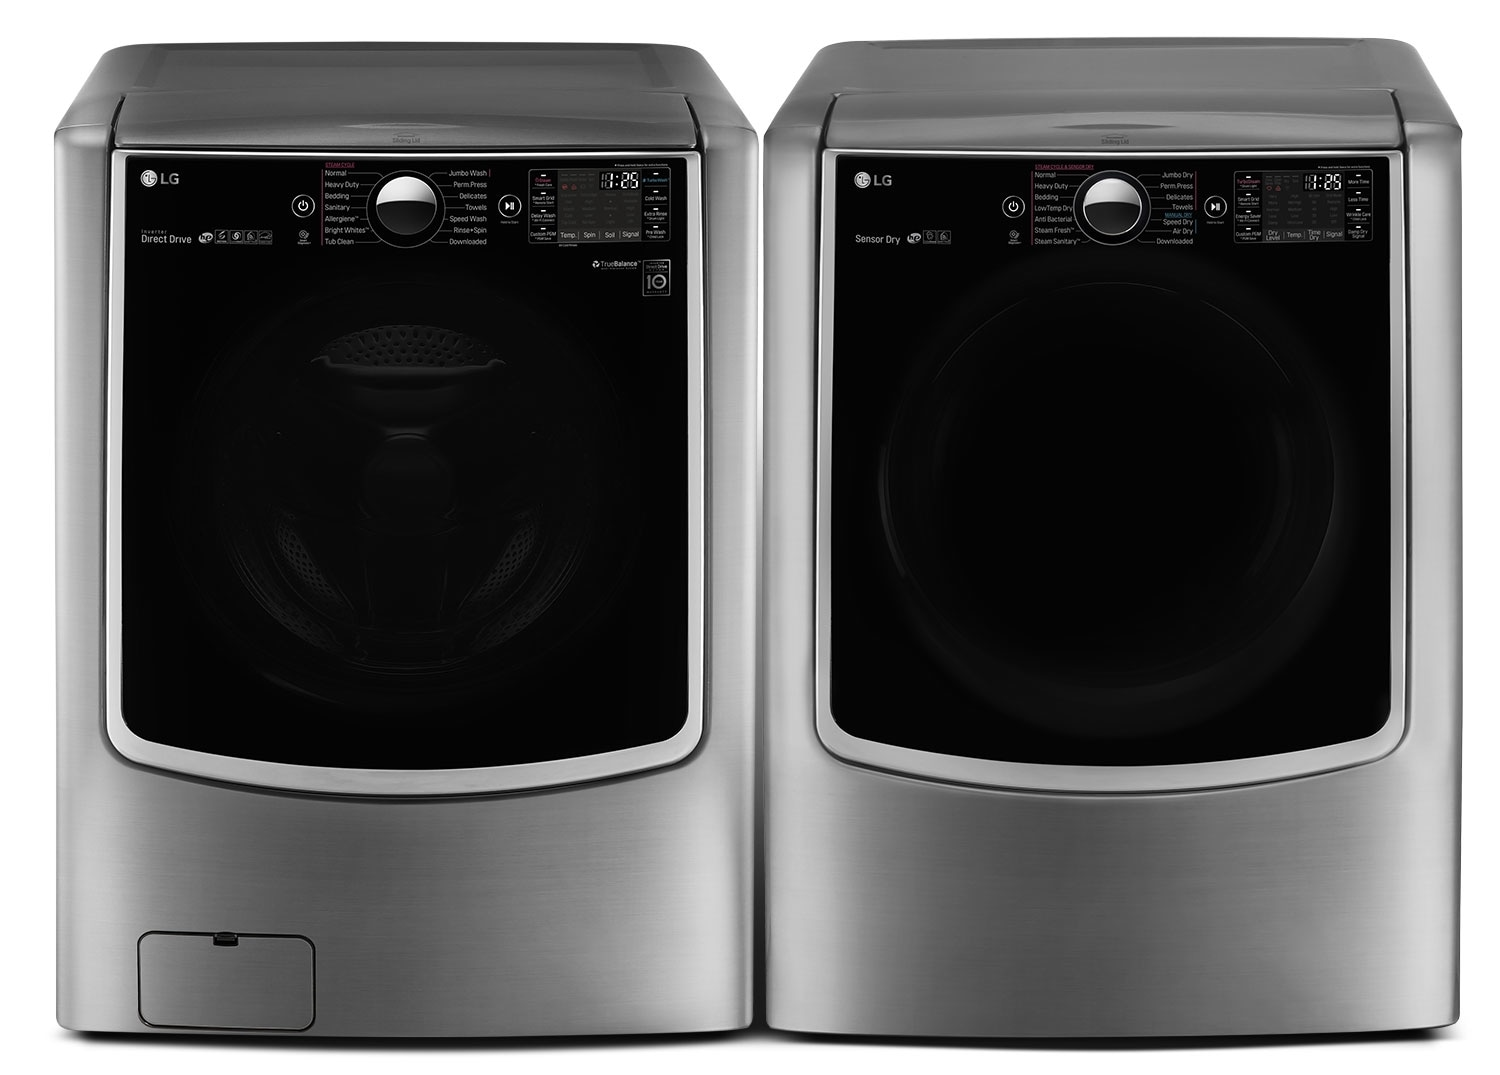 Washers and Dryers - LG 6.0 Cu. Ft. Front-Load Steam Washer and 9.0 Cu. Ft. Electric Dryer – Graphite Steel